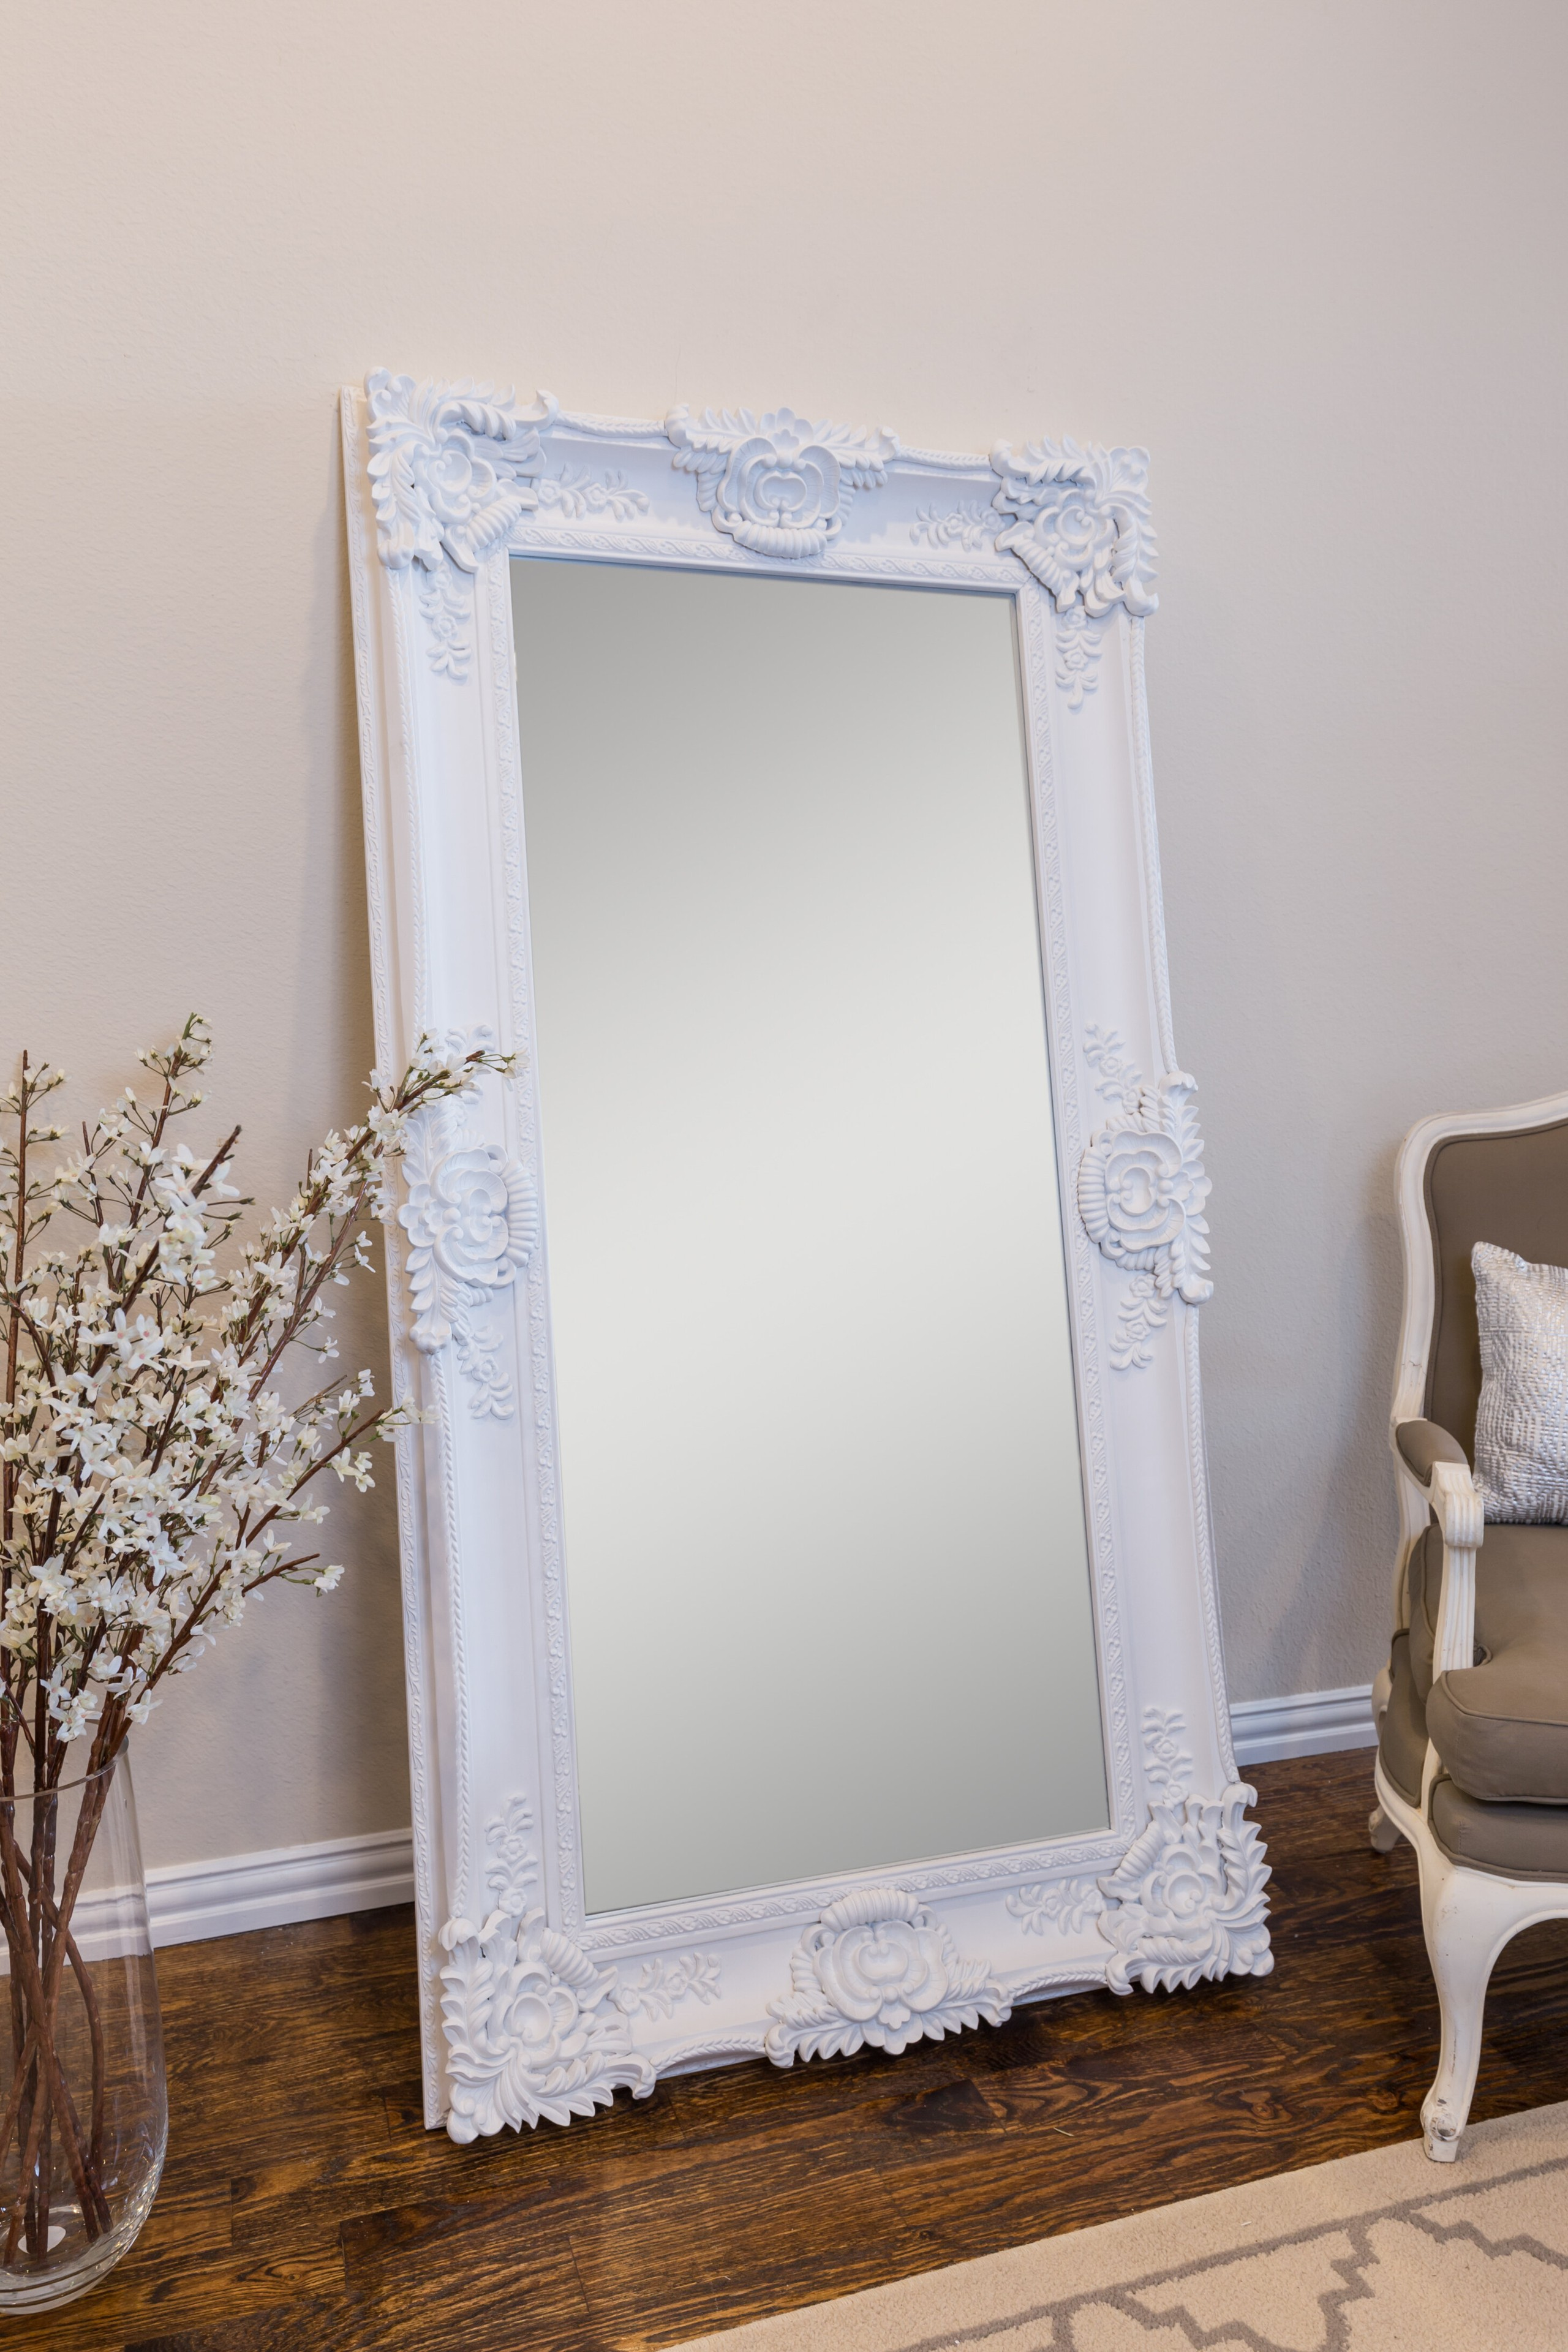 Wooden Mirror Stand Designs : Large mirror stand ideas on foter